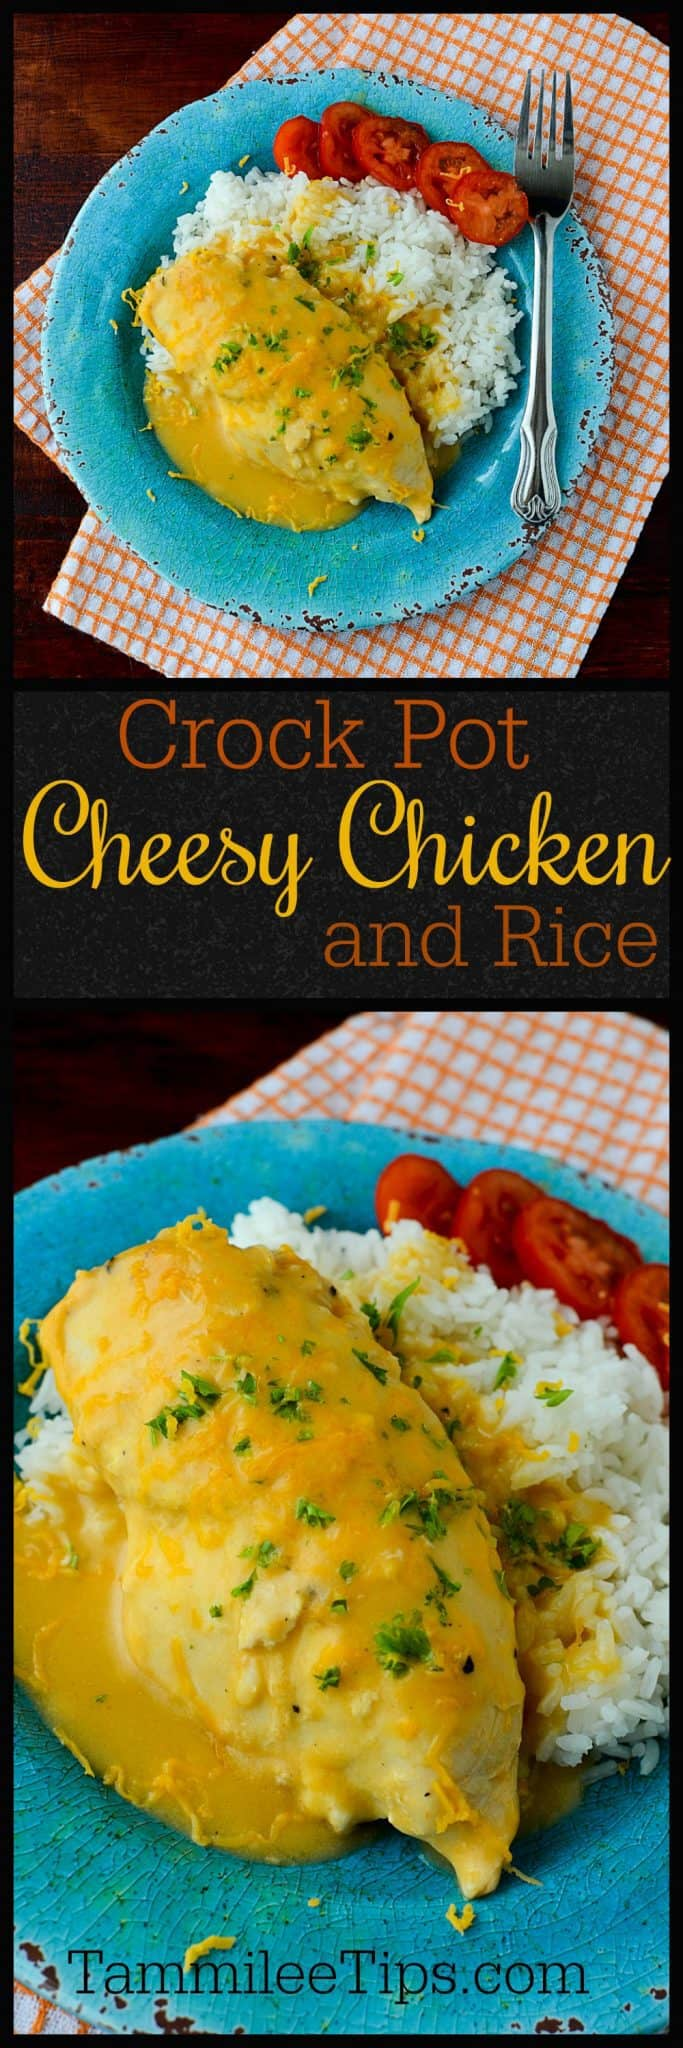 This slow cooker crock pot cheesy chicken and rice recipe is the perfect combination of cheddar cheese, chicken, and seasonings! So easy to make and perfect for family dinner.